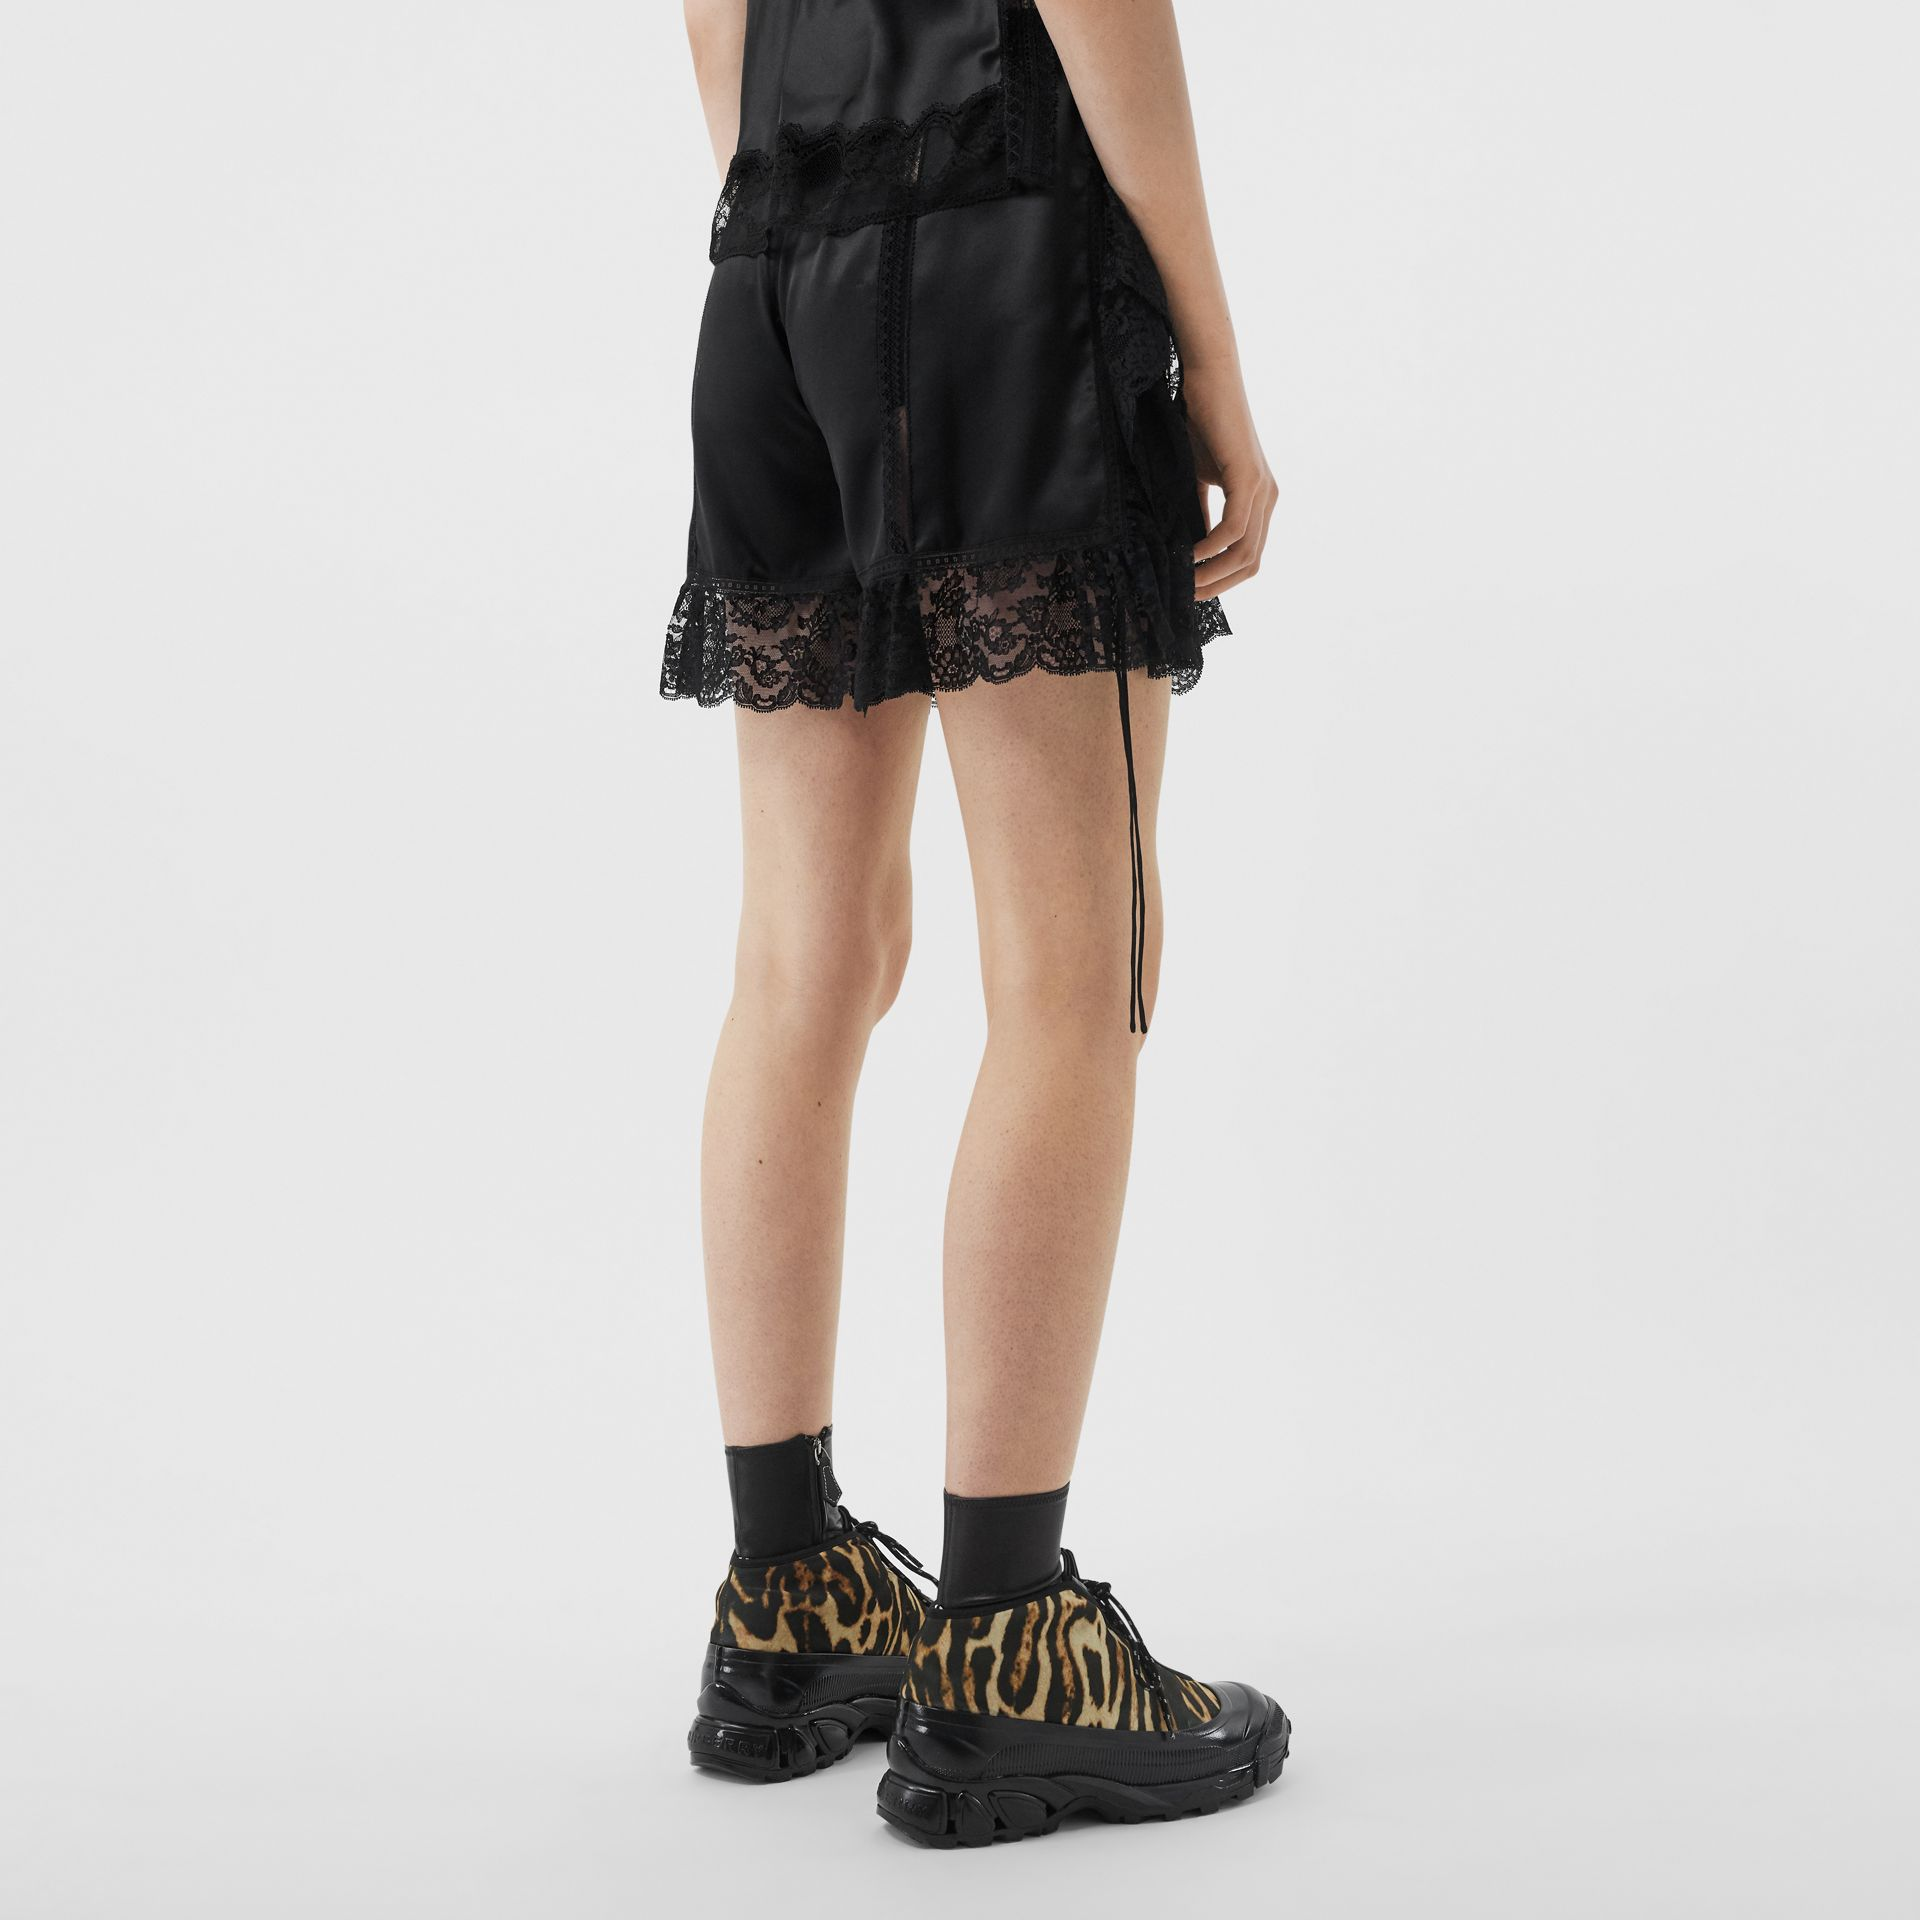 Bottle Cap Detail Satin and Lace Shorts in Black - Women | Burberry - gallery image 2